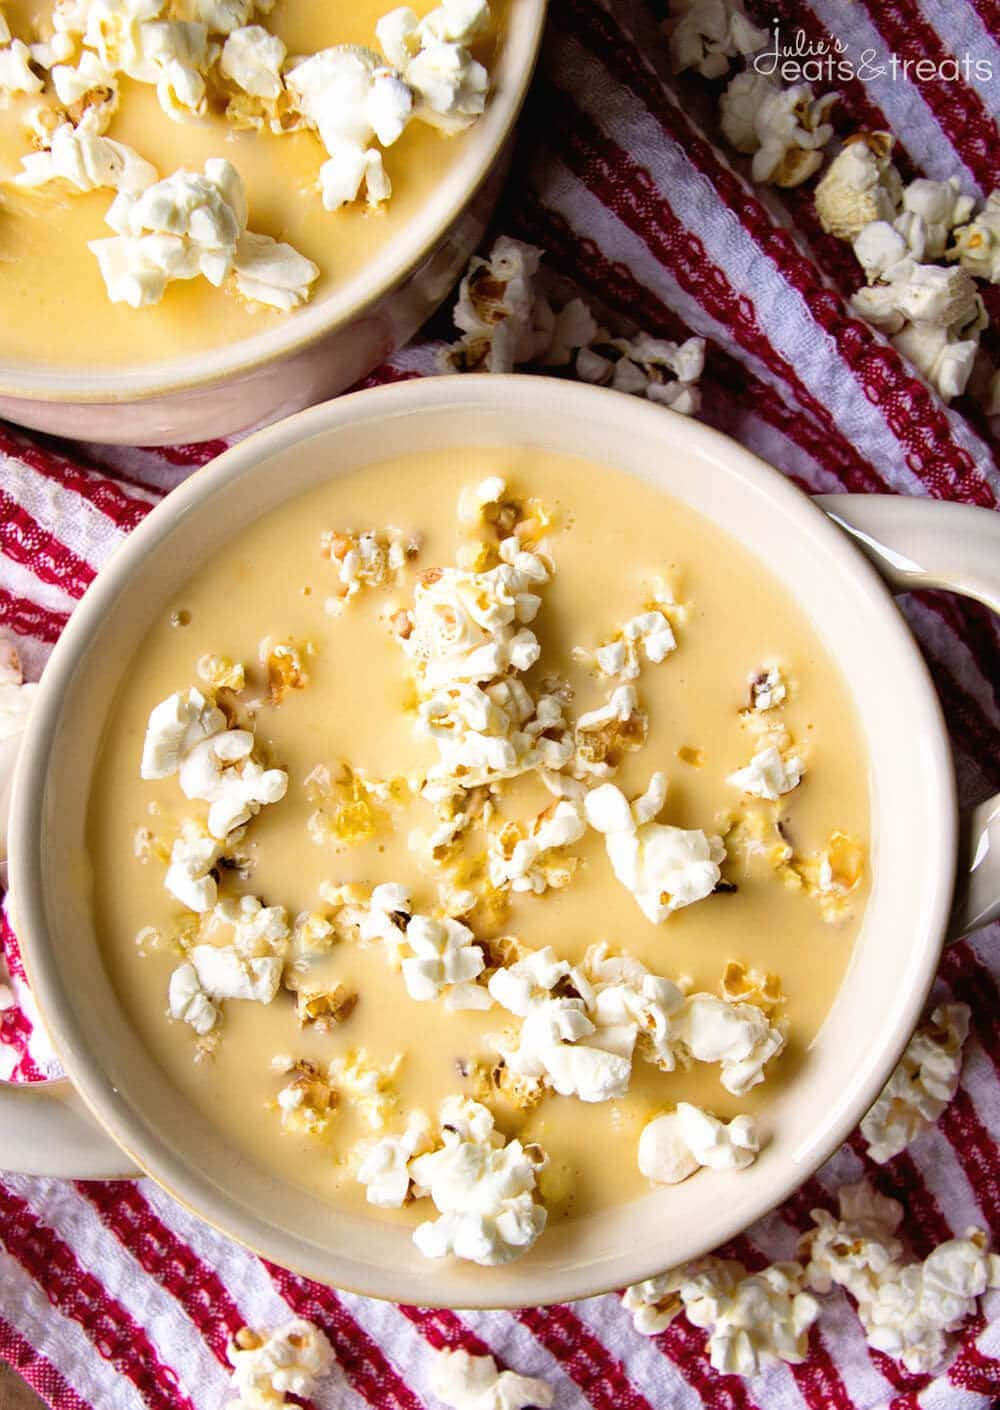 Beer Cheese Soup topped with popcorn in bowl